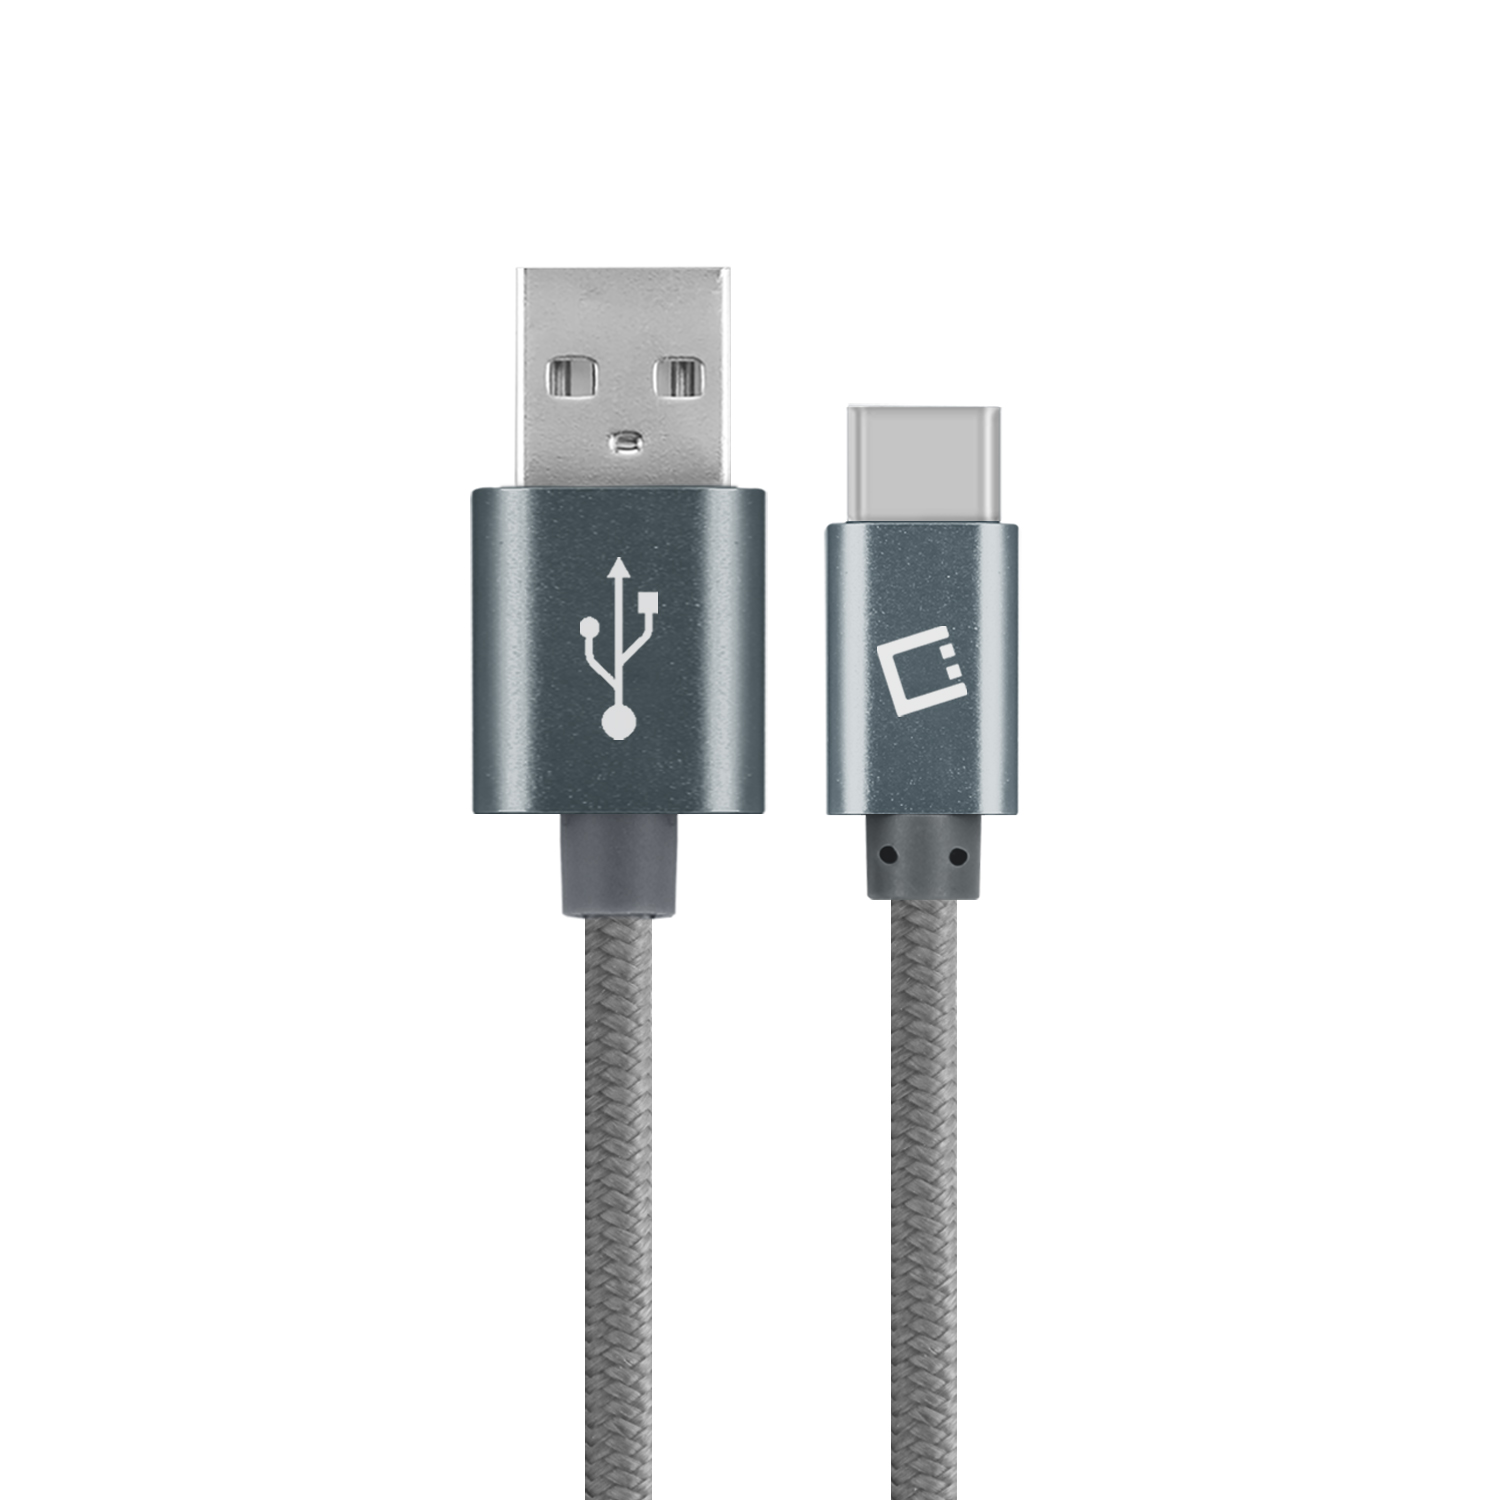 Samsung Galaxy S10 Plus USB Type-C To Type-A Braided Data Power Cable Grey 6ft Braided